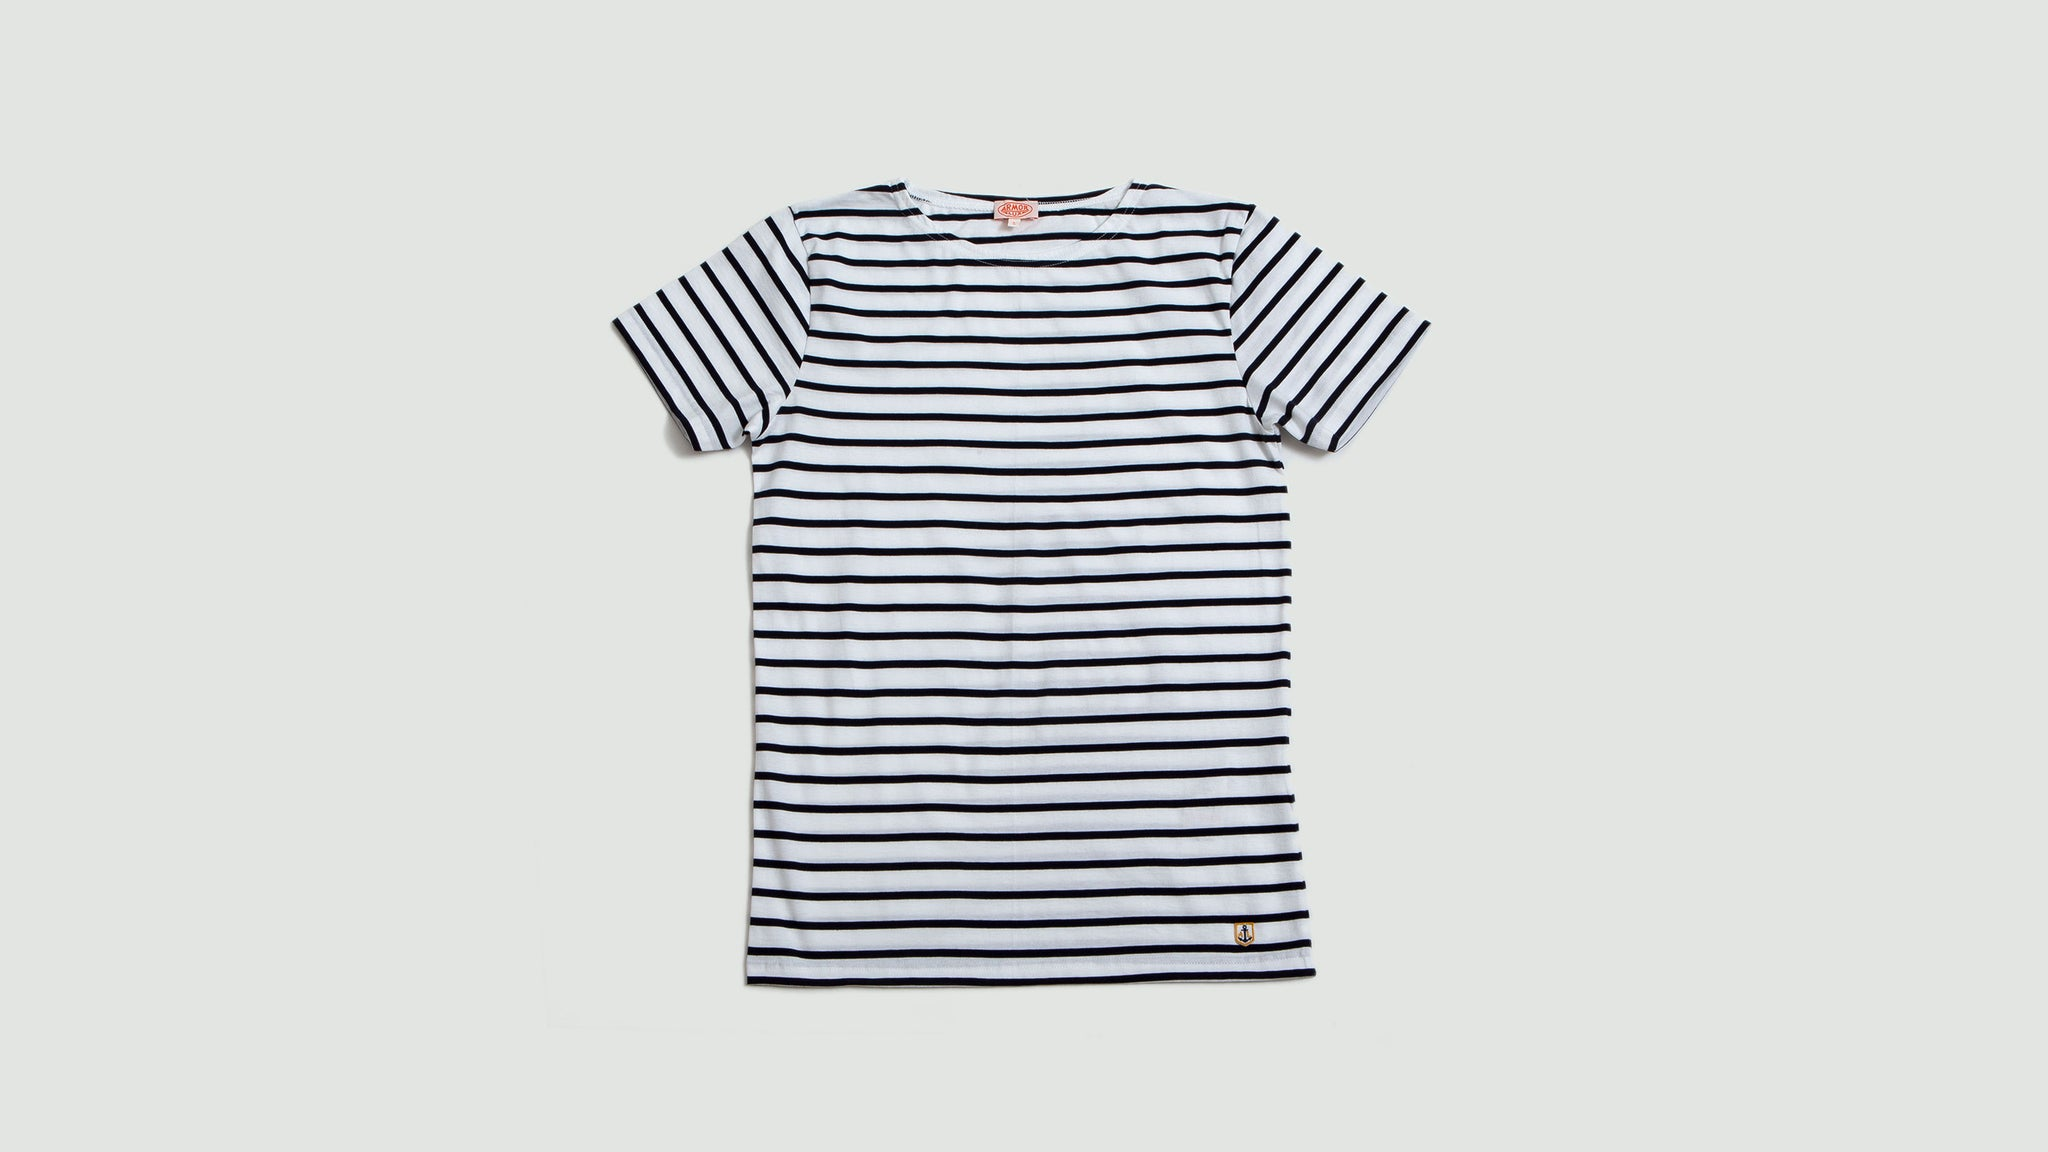 Armor Lux. Sailor shirt s/s white/navy